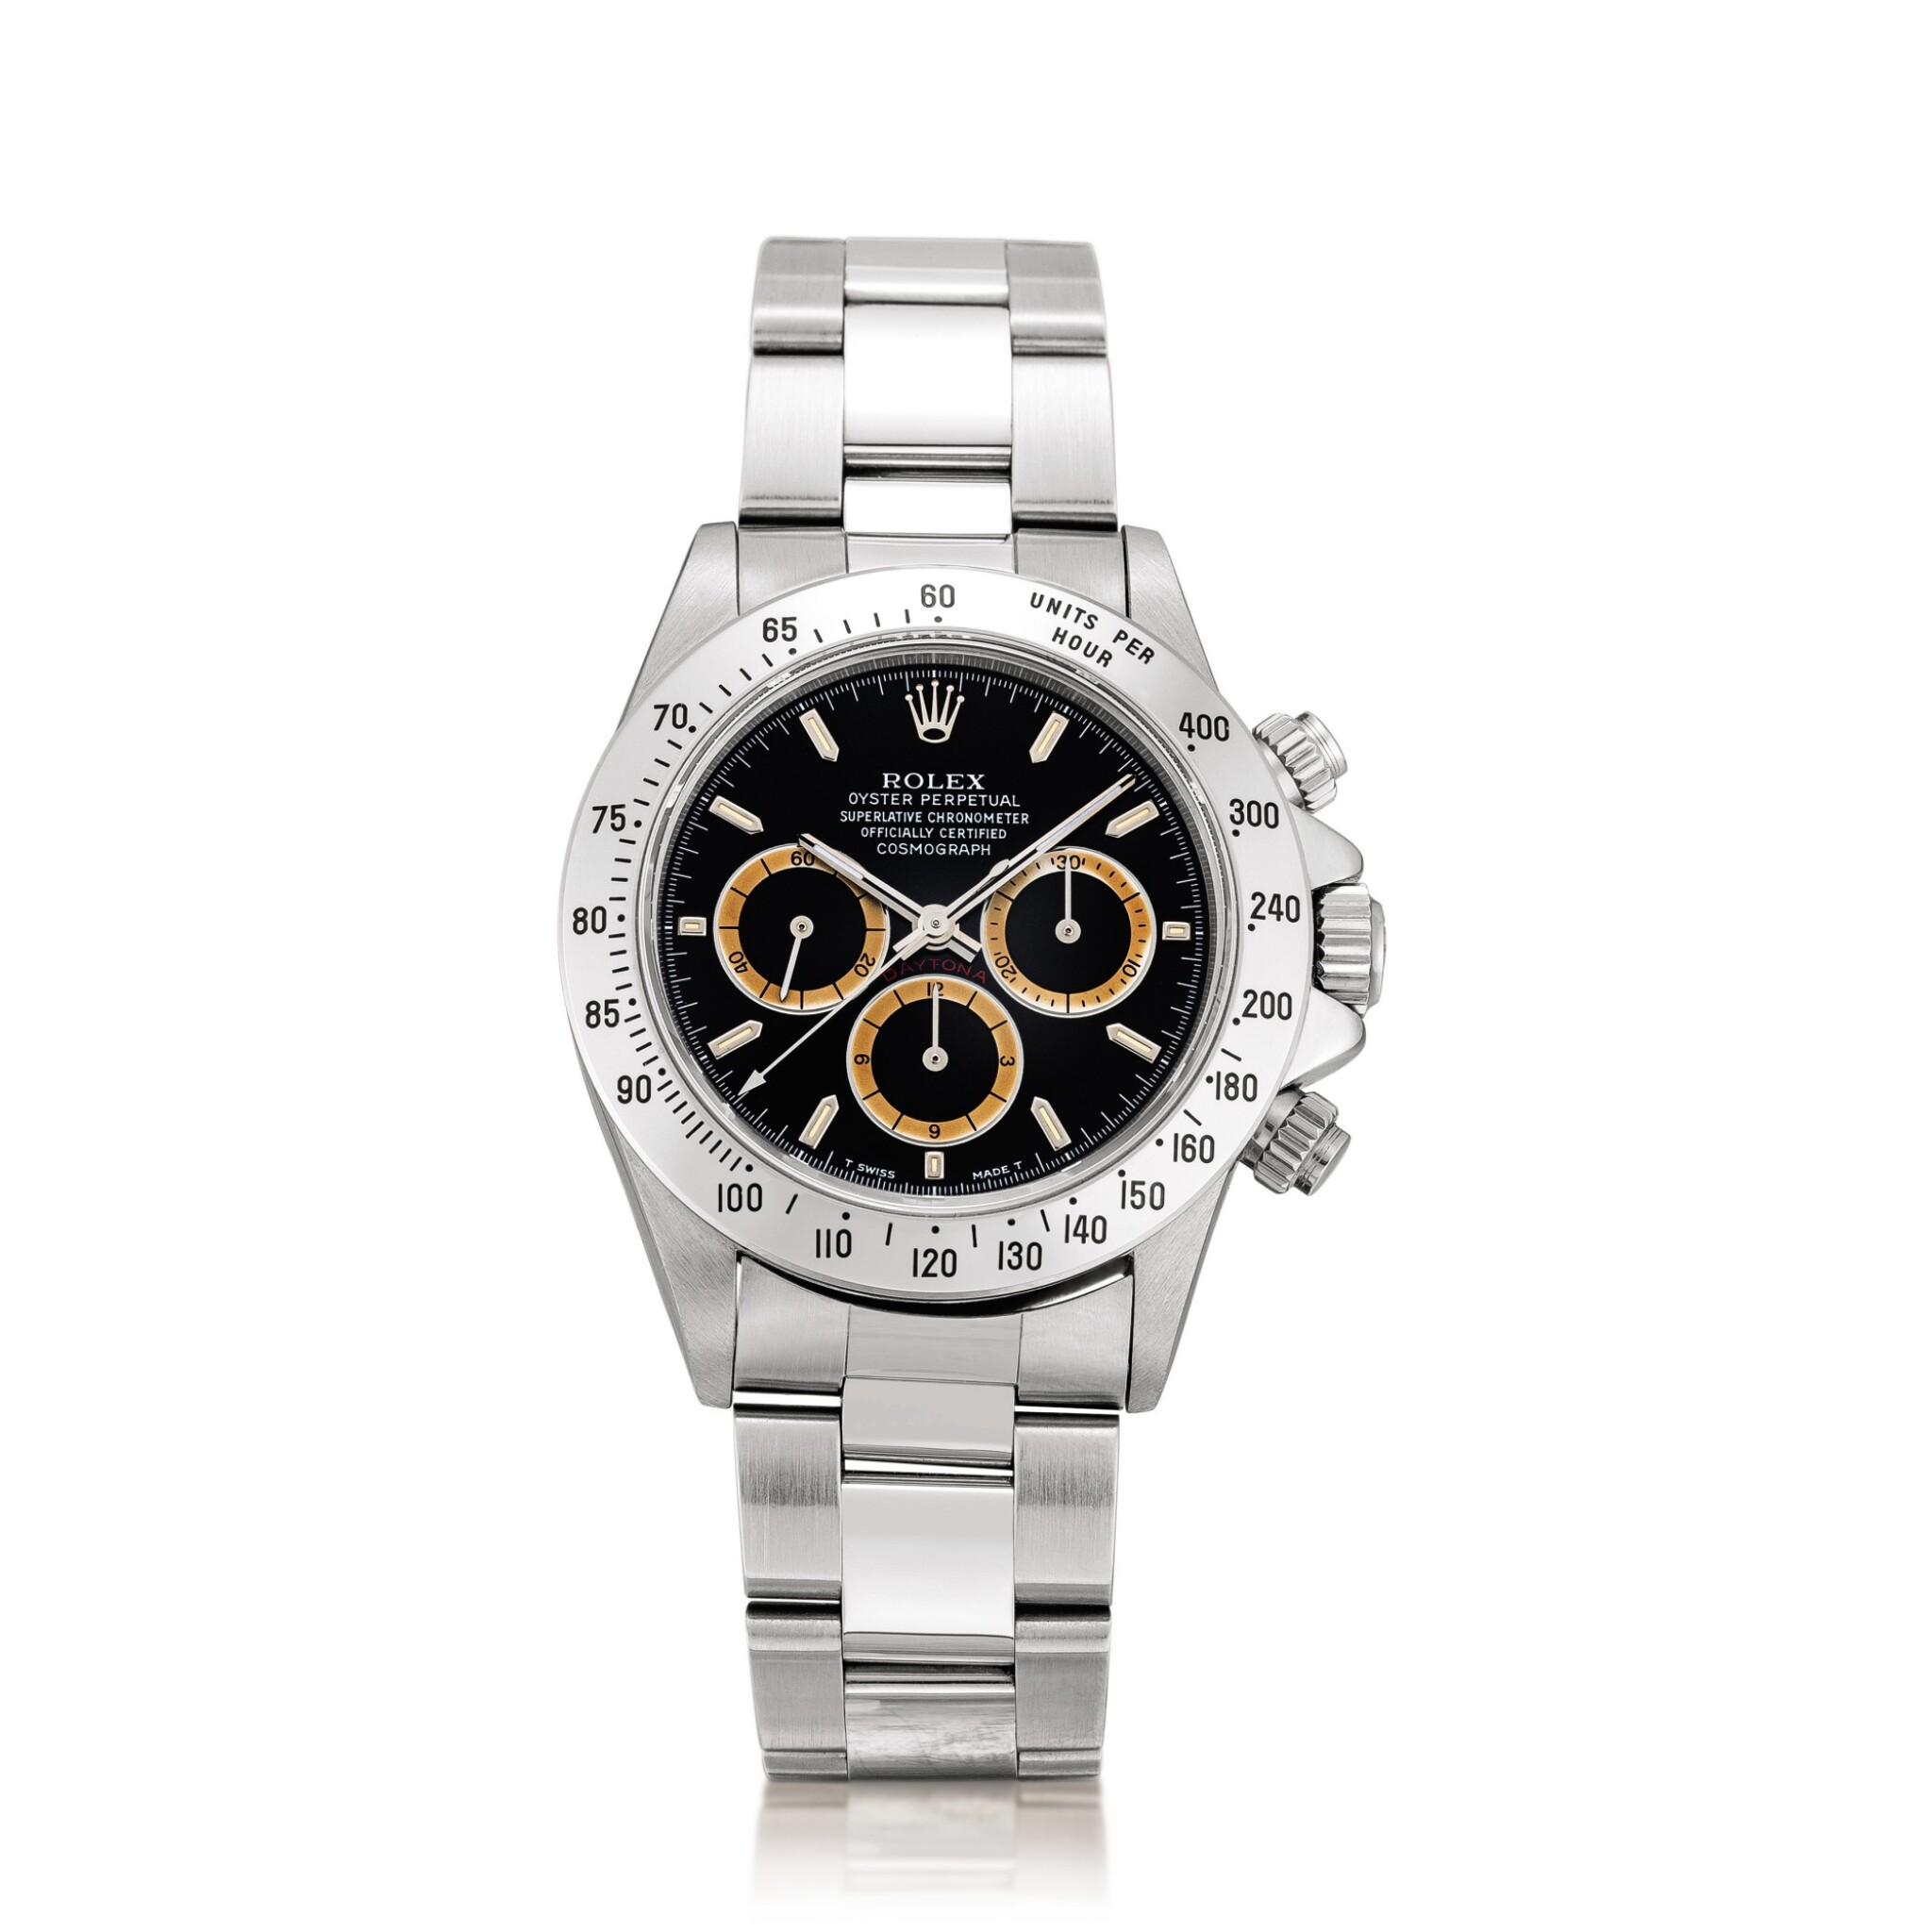 View full screen - View 1 of Lot 2151. Rolex | Cosmograph Daytona, Reference 16520, A stainless steel chronograph wristwatch with tropical registers and bracelet, Circa 1994 | 勞力士 | Cosmograph Daytona 型號16520  精鋼計時鏈帶腕錶,備棕式小錶盤,約1994年製.